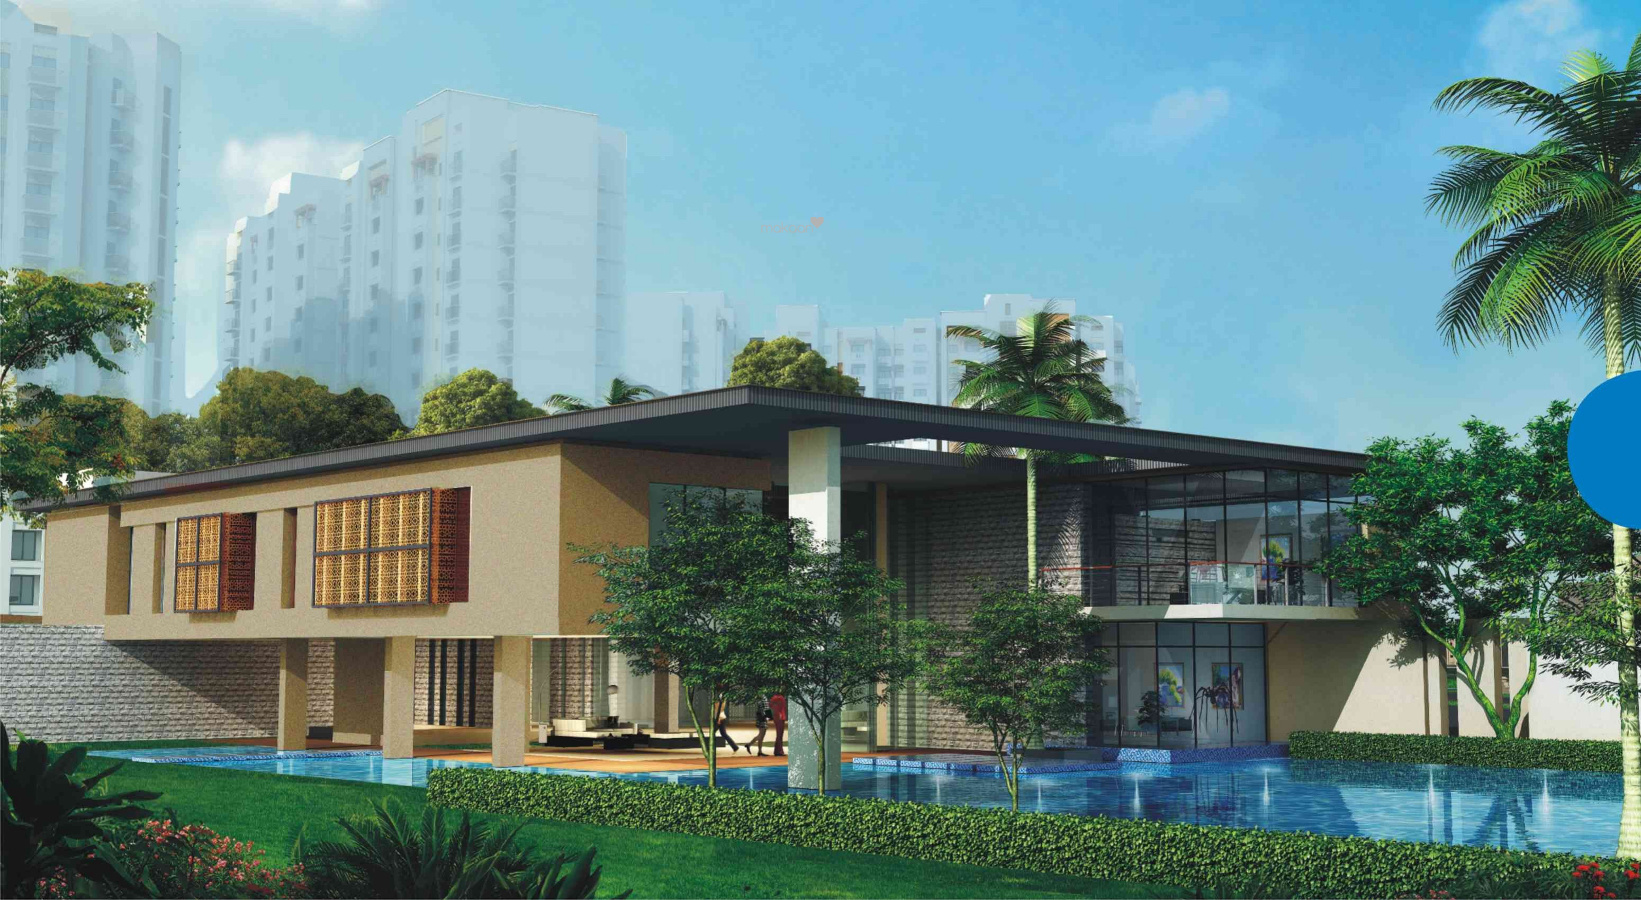 1077 Sq Ft 2 BHK 2T NorthEast Facing Villa For Sale At Rs 57.00 Lacs In Garden  Bay Villa In Mubarakpur, Lucknow